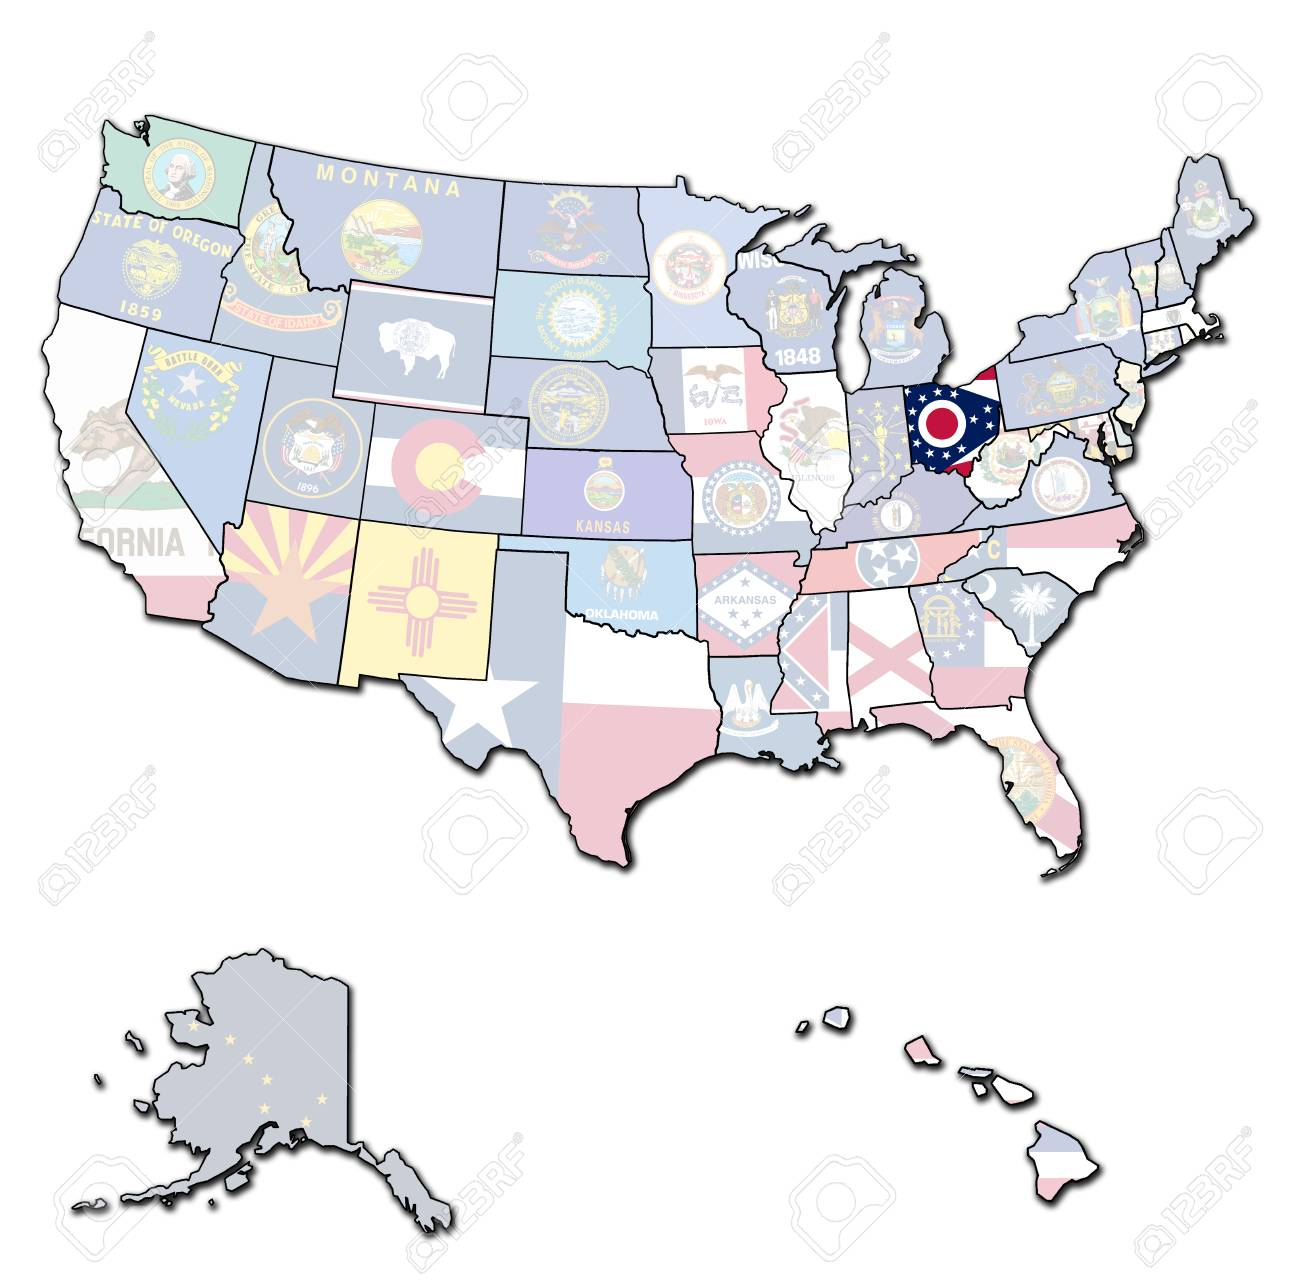 Ohio On State Map.Ohio On Isolated Map Of United States Of America With State Borders